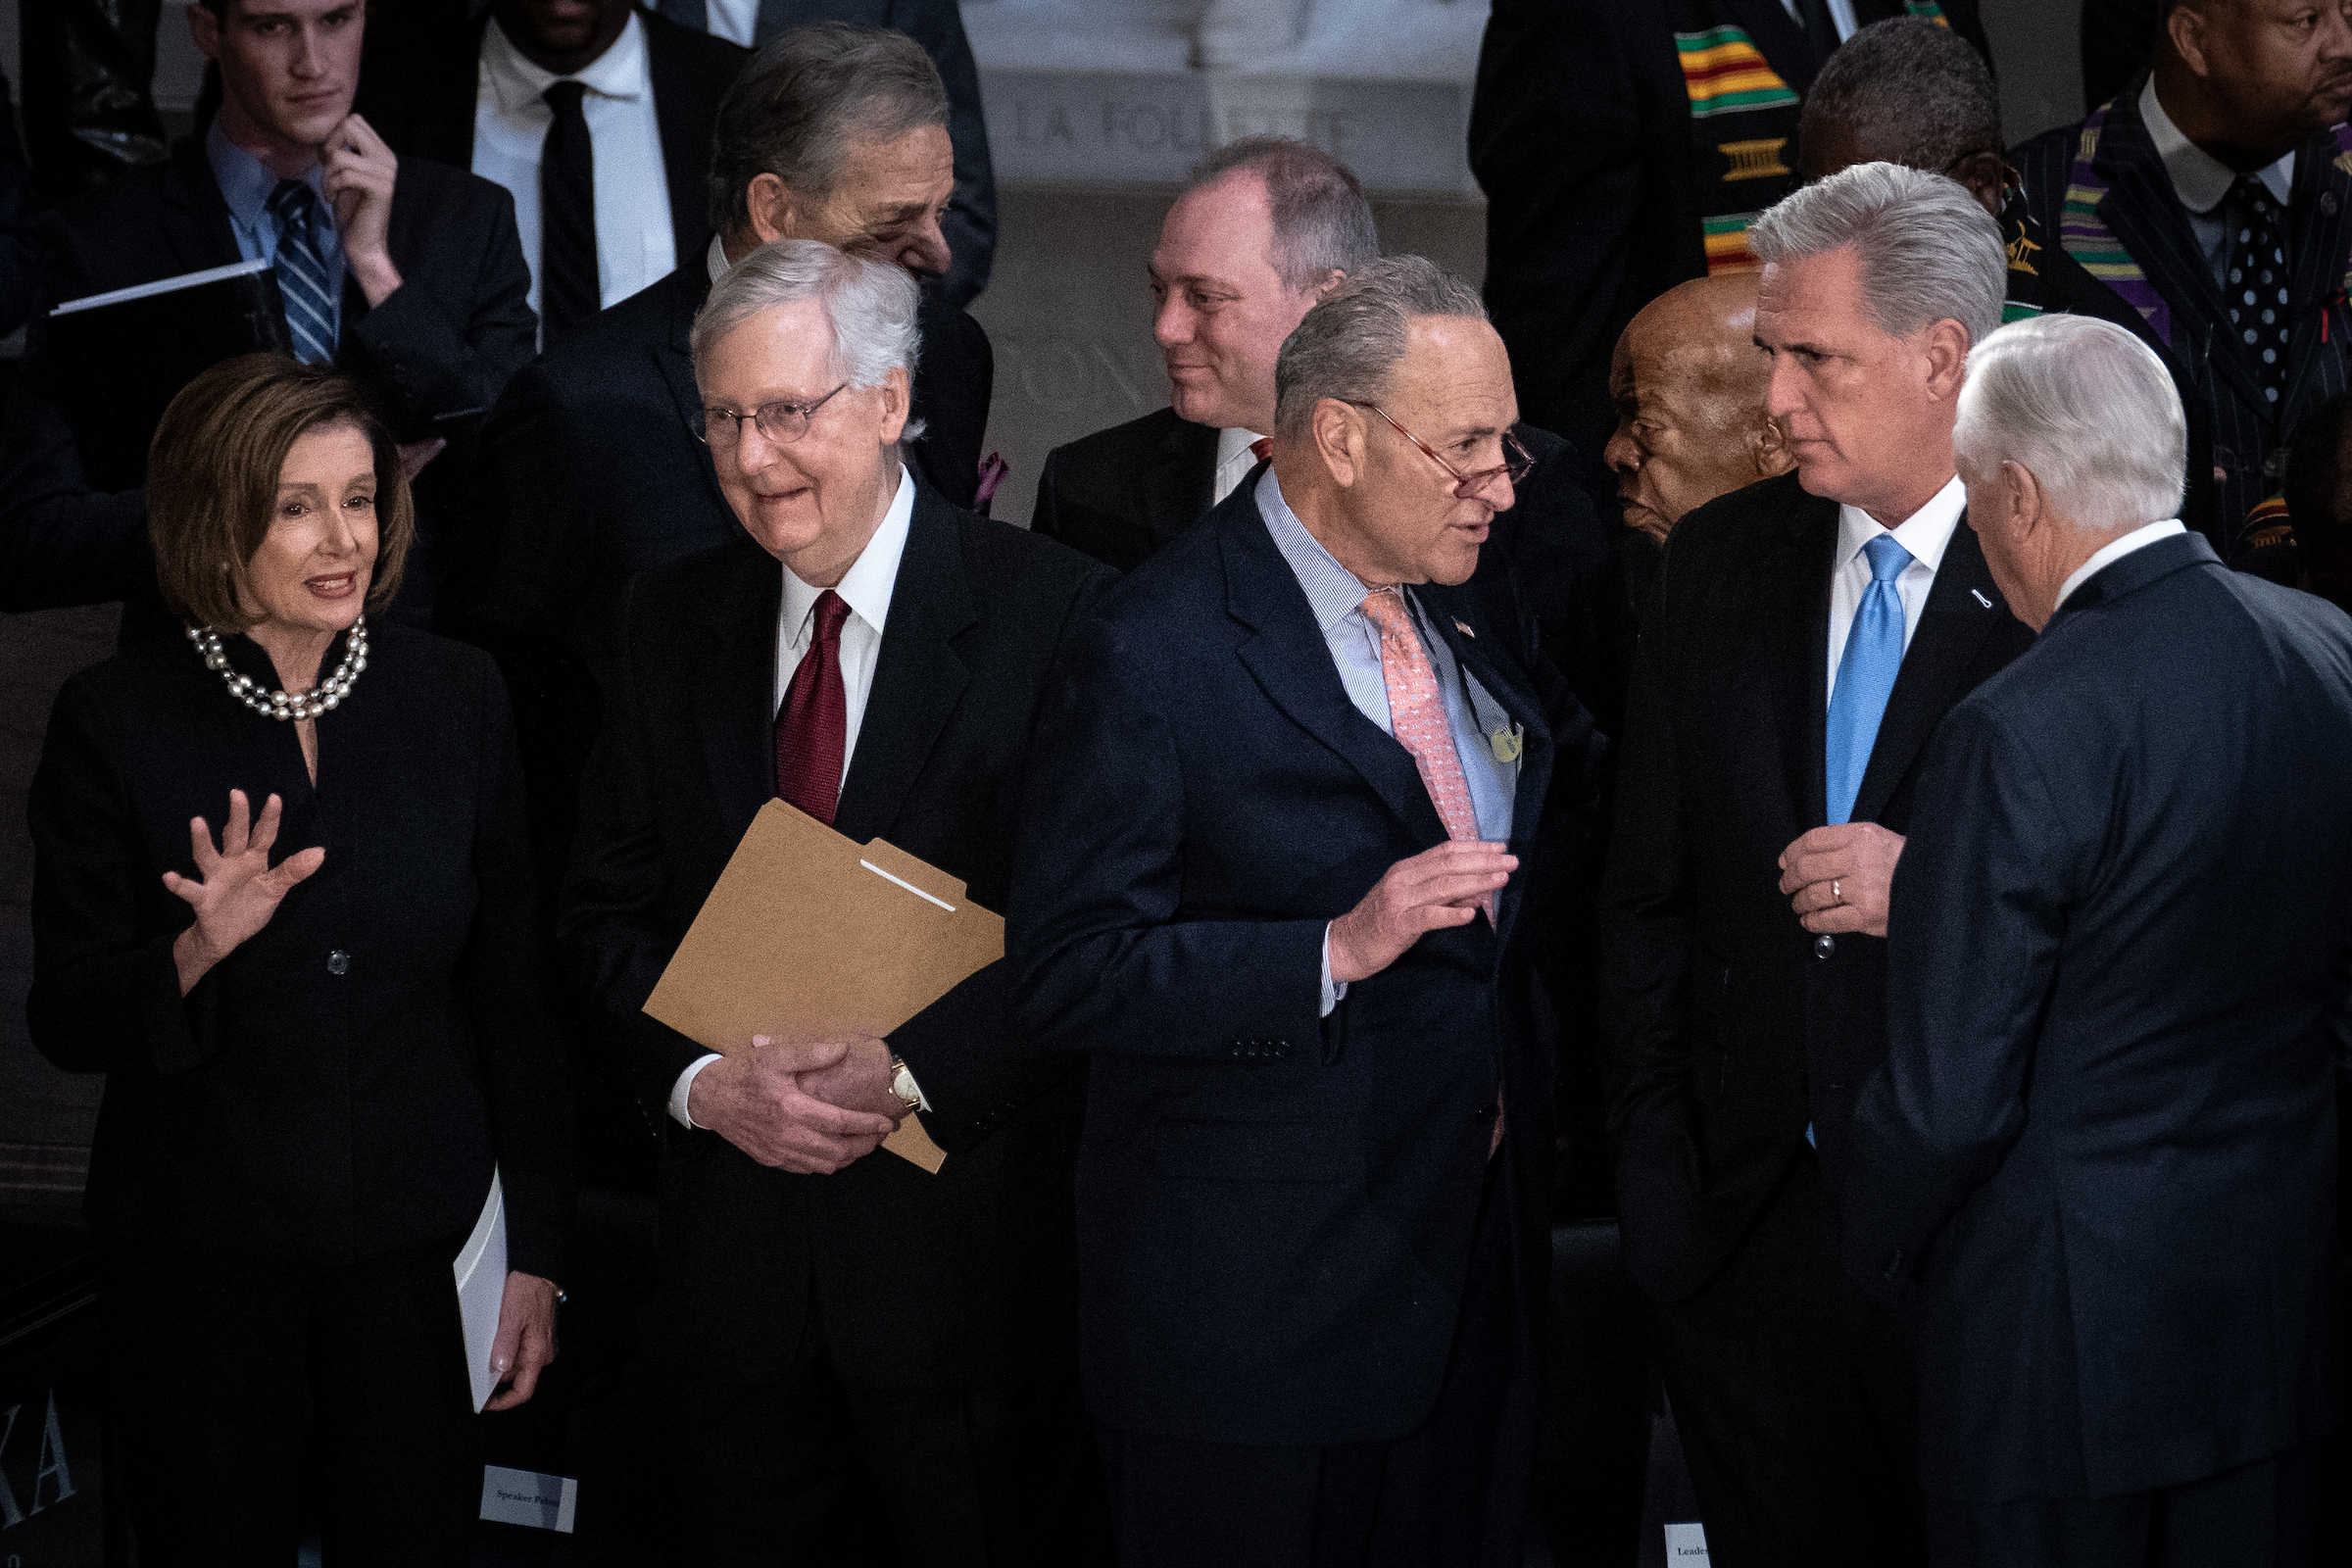 violent-extremists-took-over-the-us-capitol-long-before-january-6